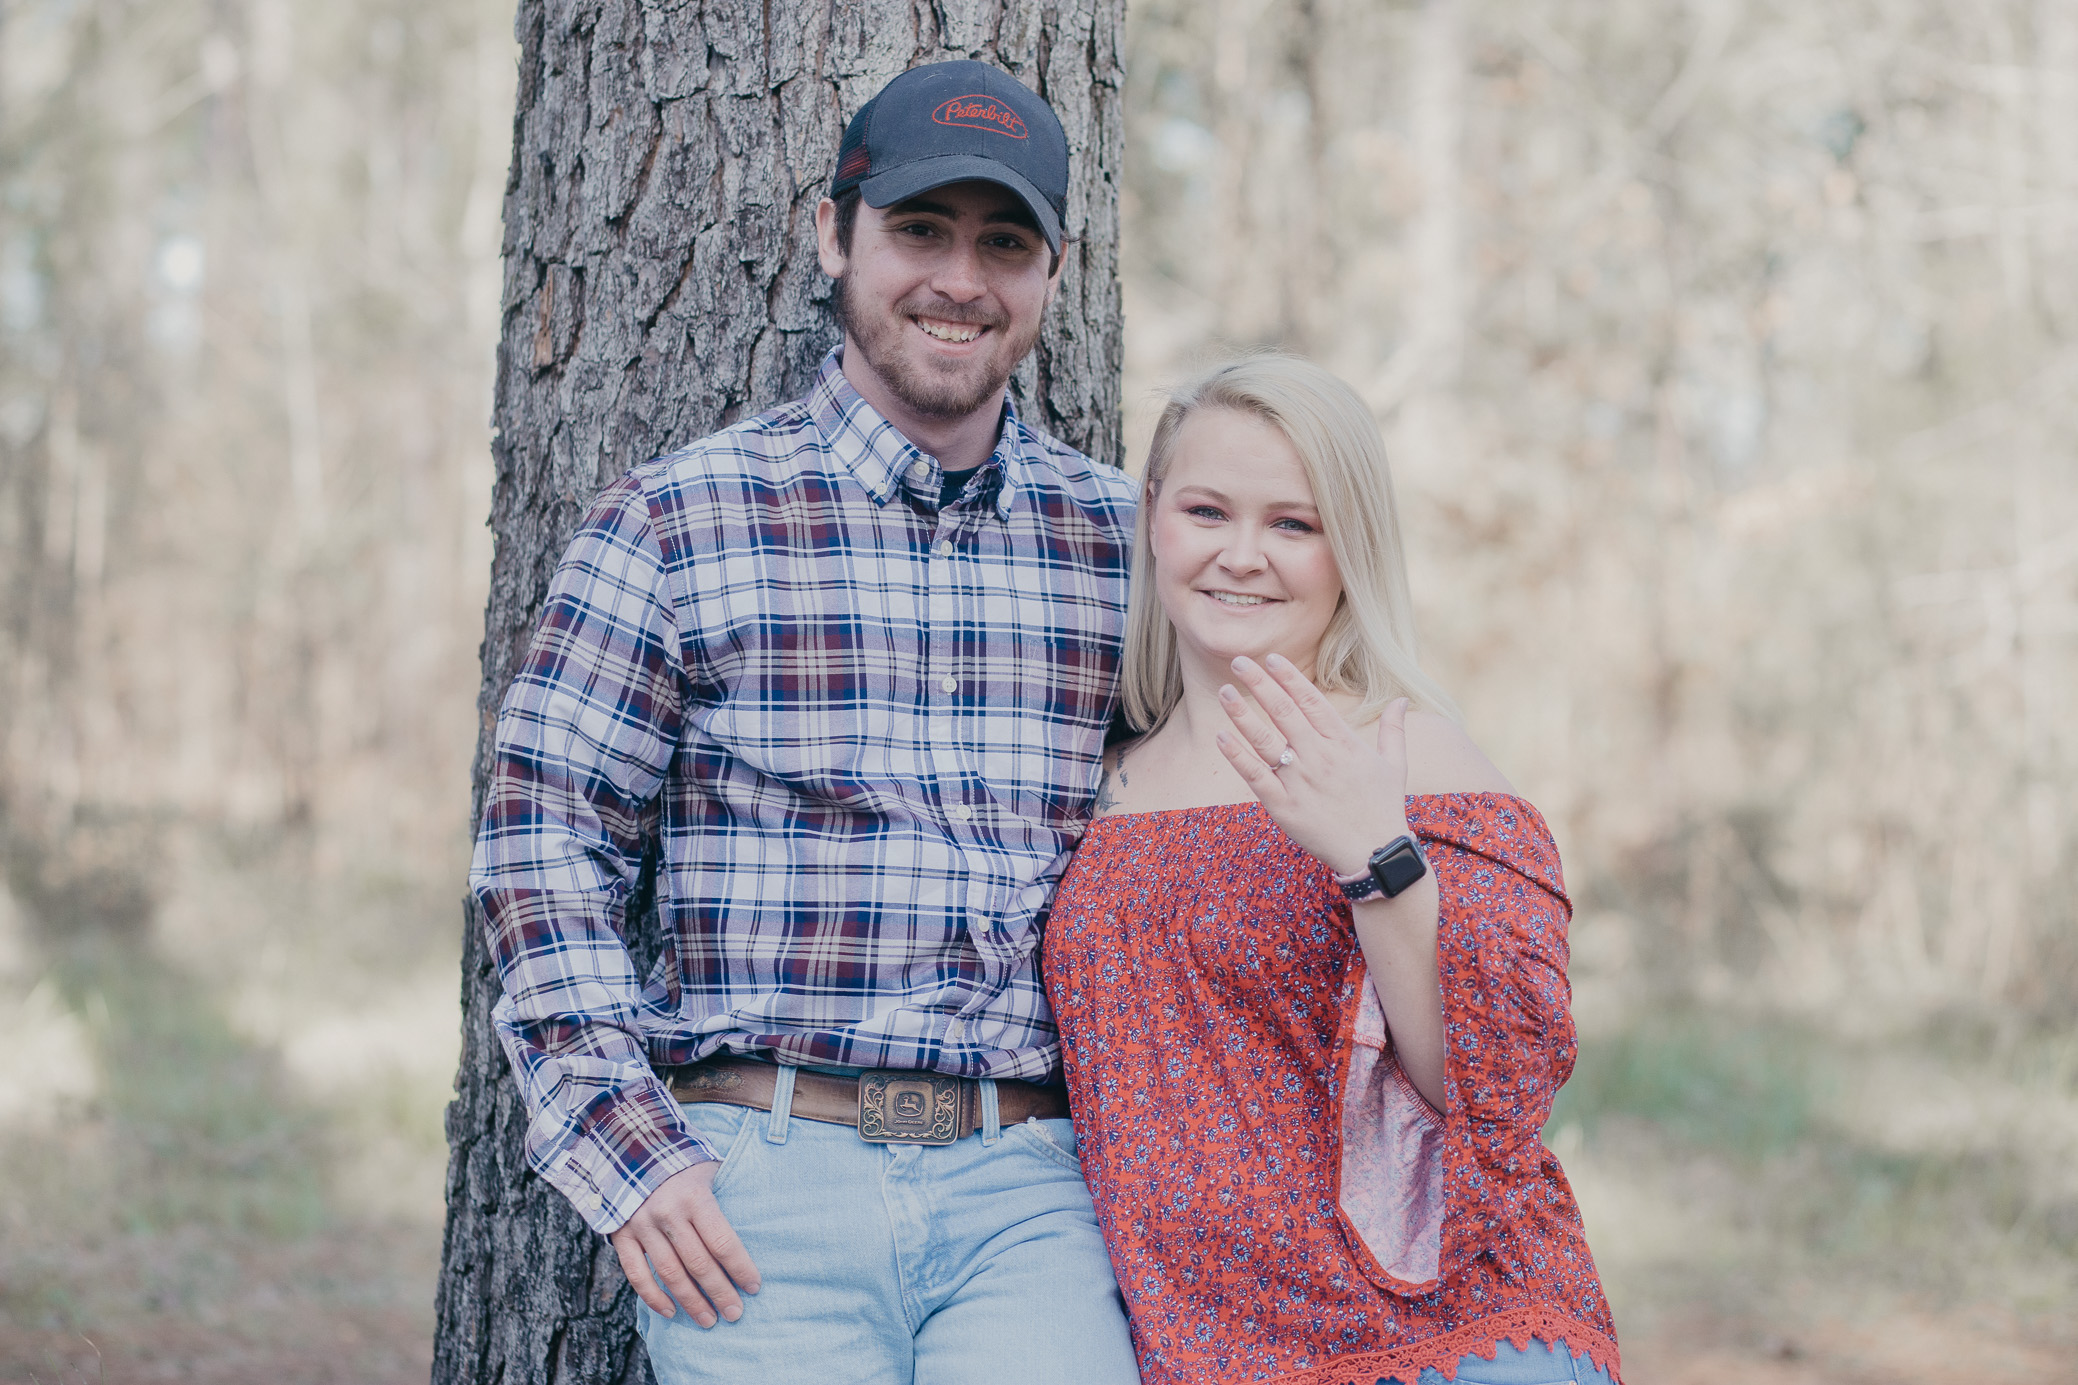 Alabama engagement photography in Tallassee by David A. Smith of DSmithImages Wedding Photography, Portraits, and Events, a wedding photographer in Birmingham, Alabama